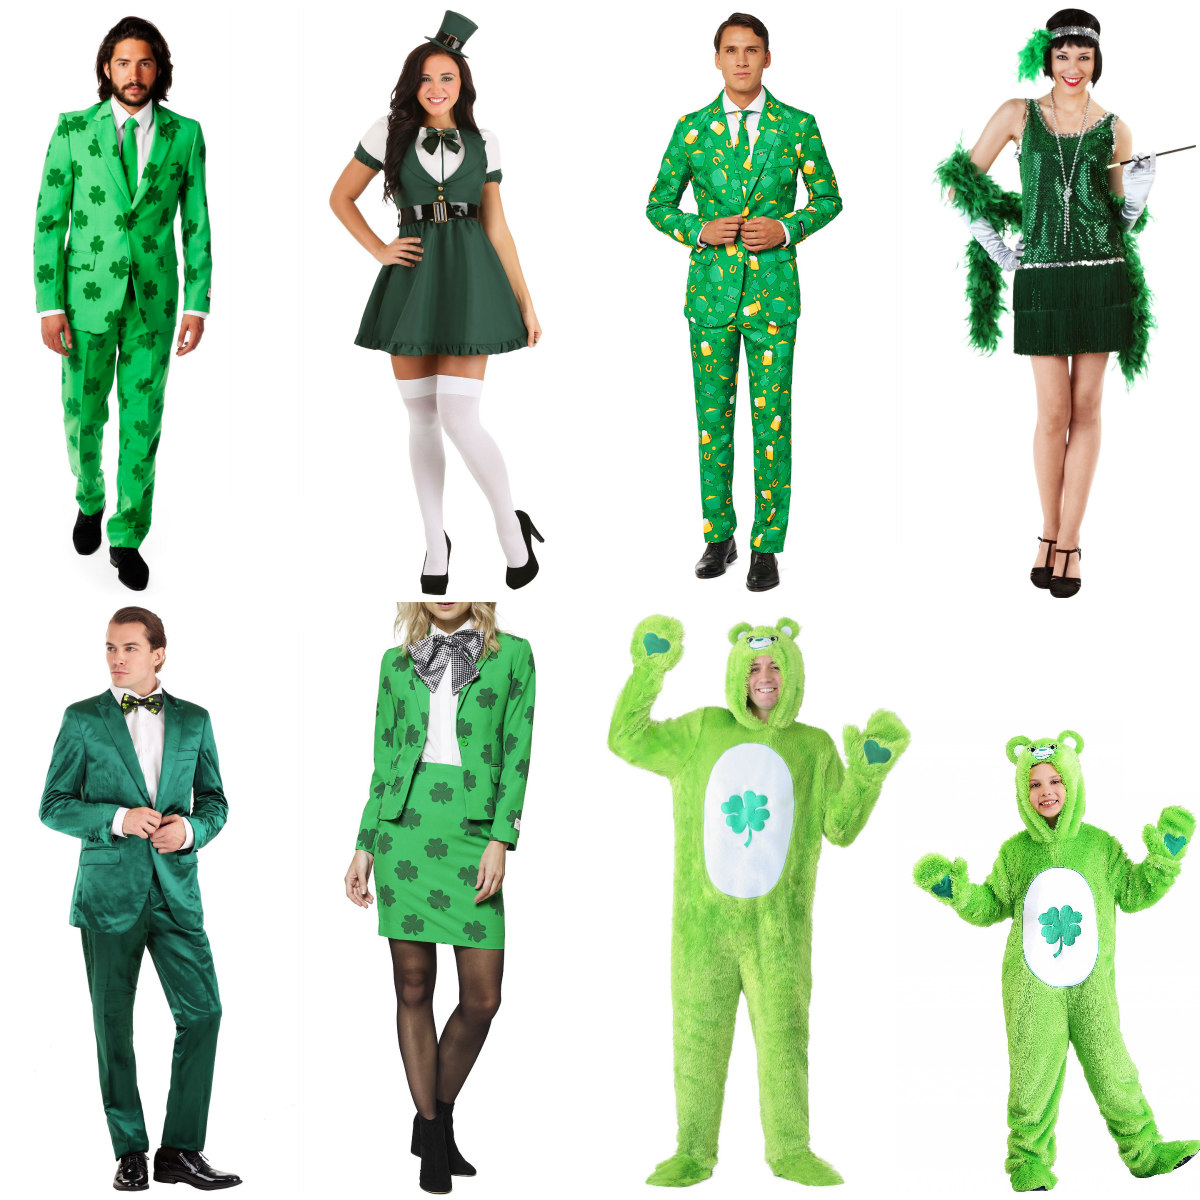 St. Patrick's Day Apparel for Parties